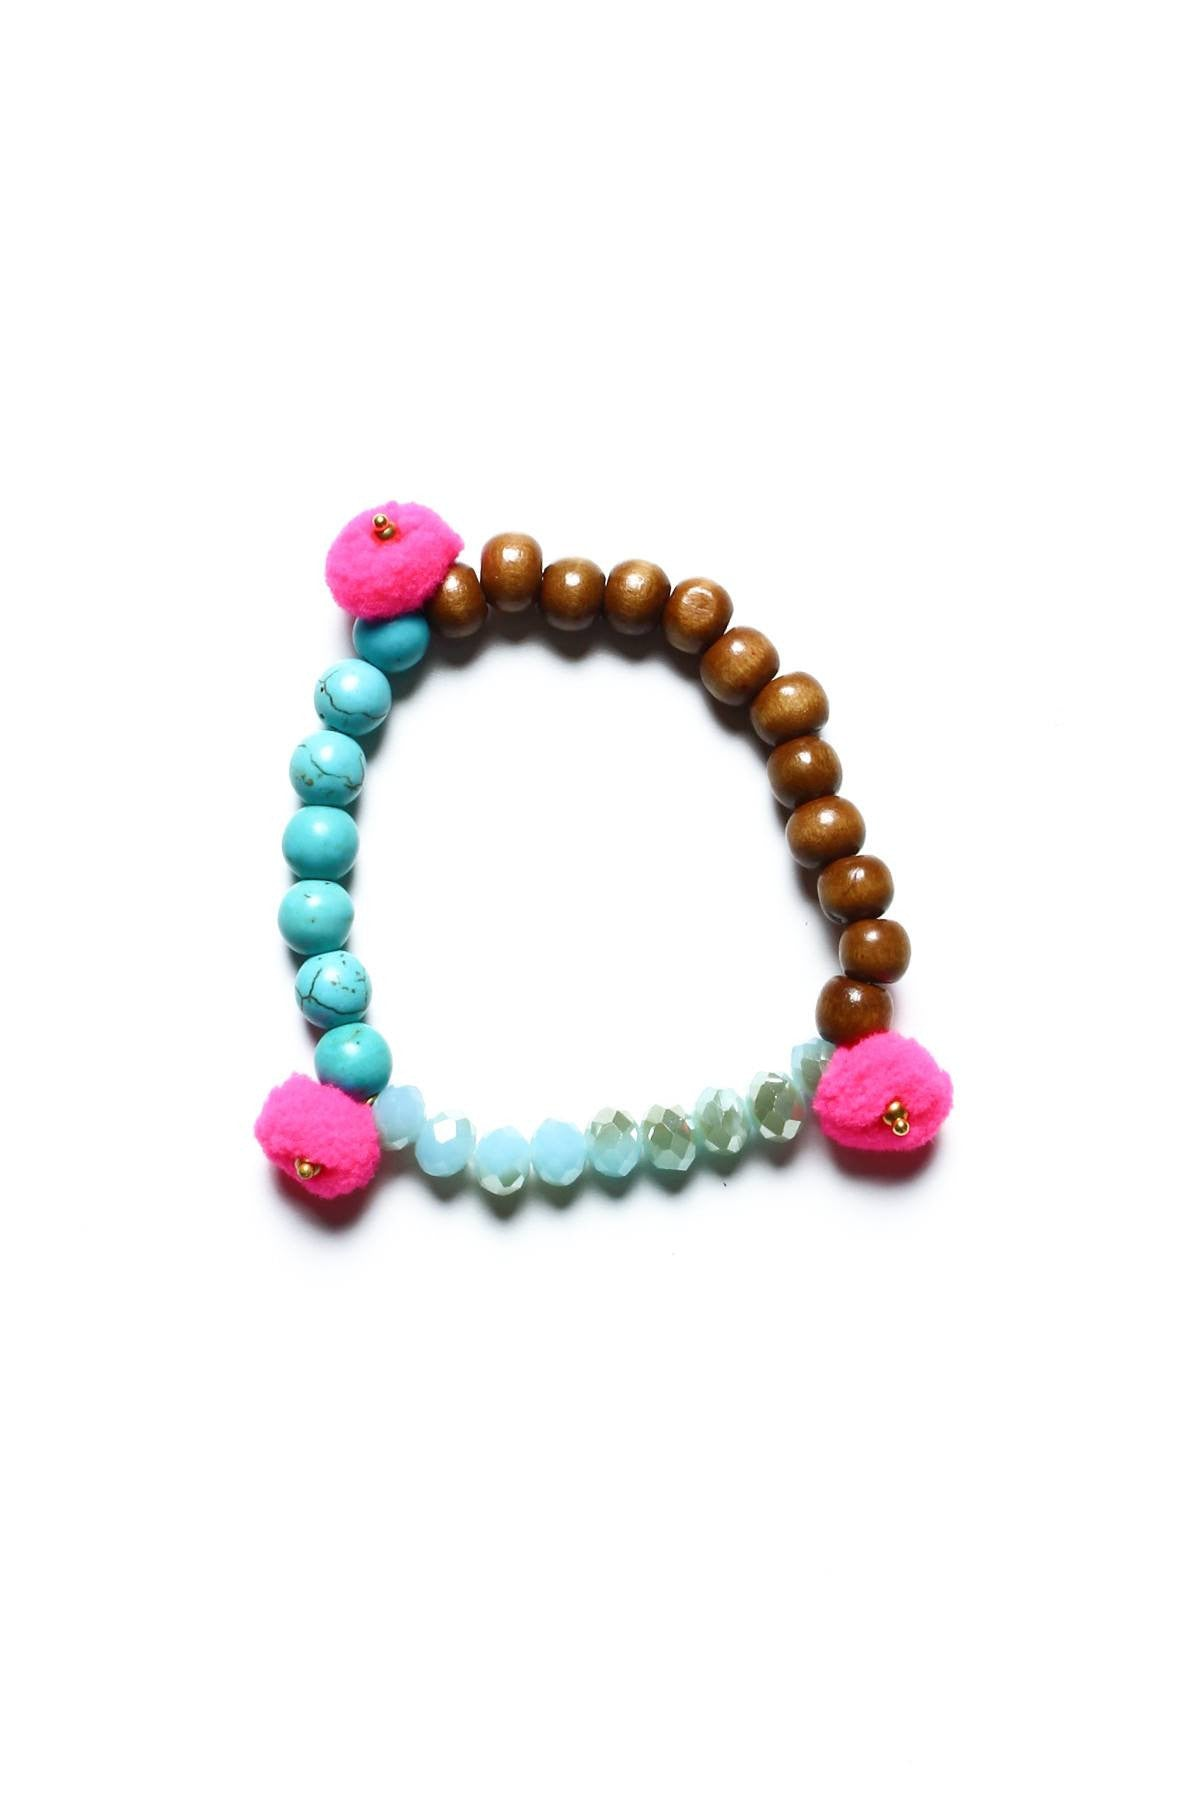 Bright Idea Beaded Bracelet - Pink